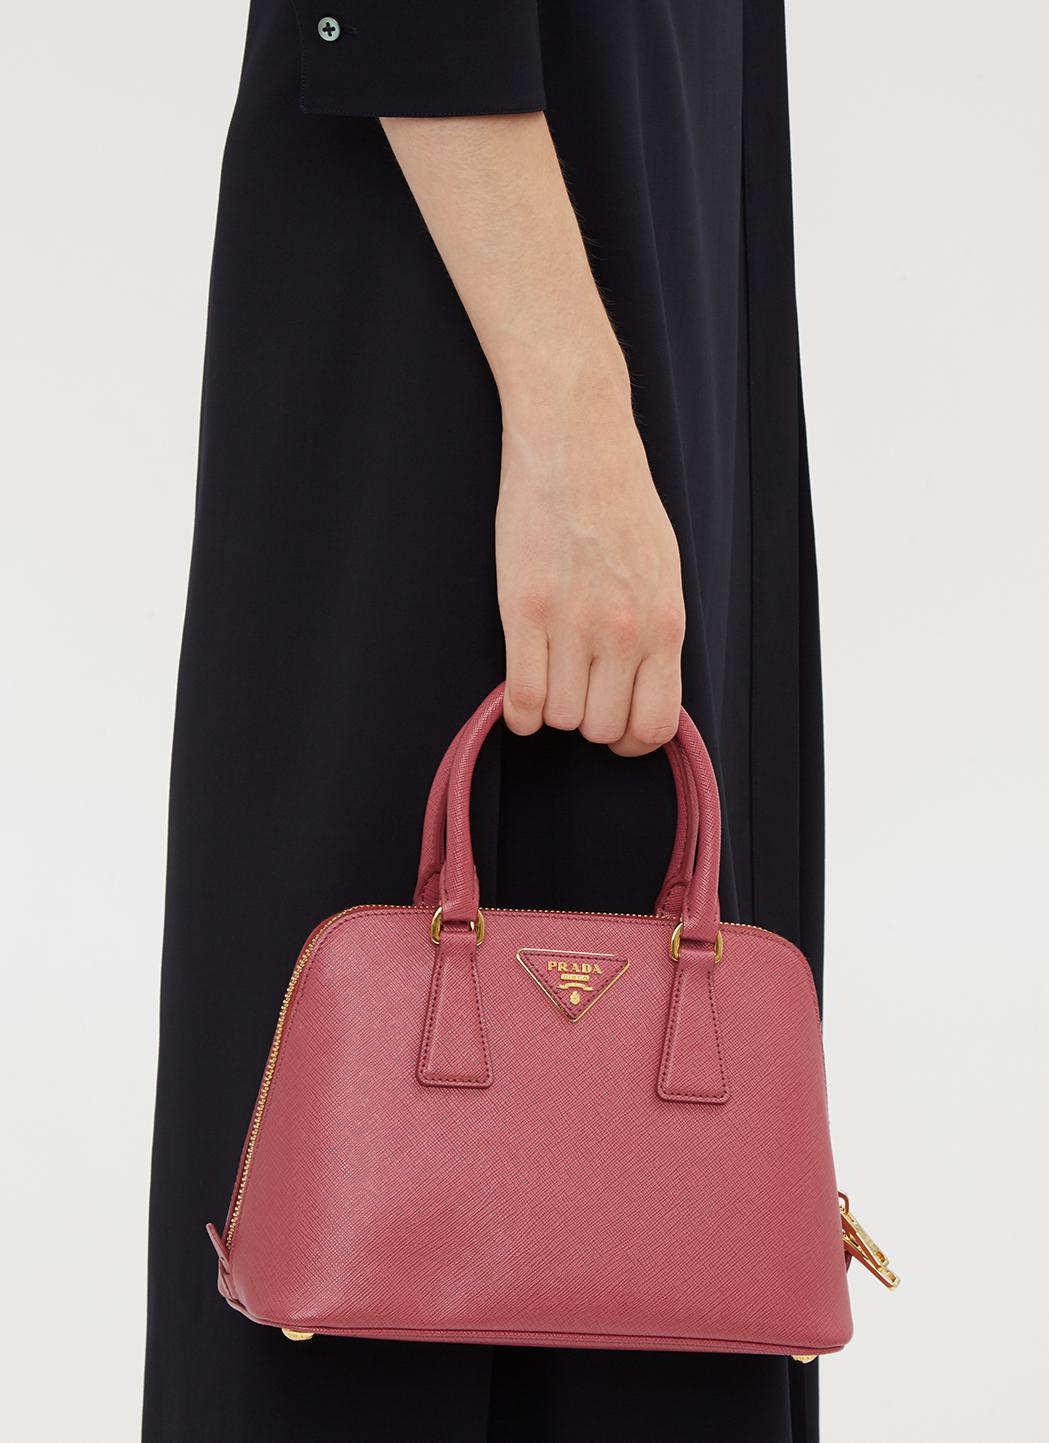 ff36db4abb6a Prada Round Saffiano Hand Bag In Pink in Pink - Lyst